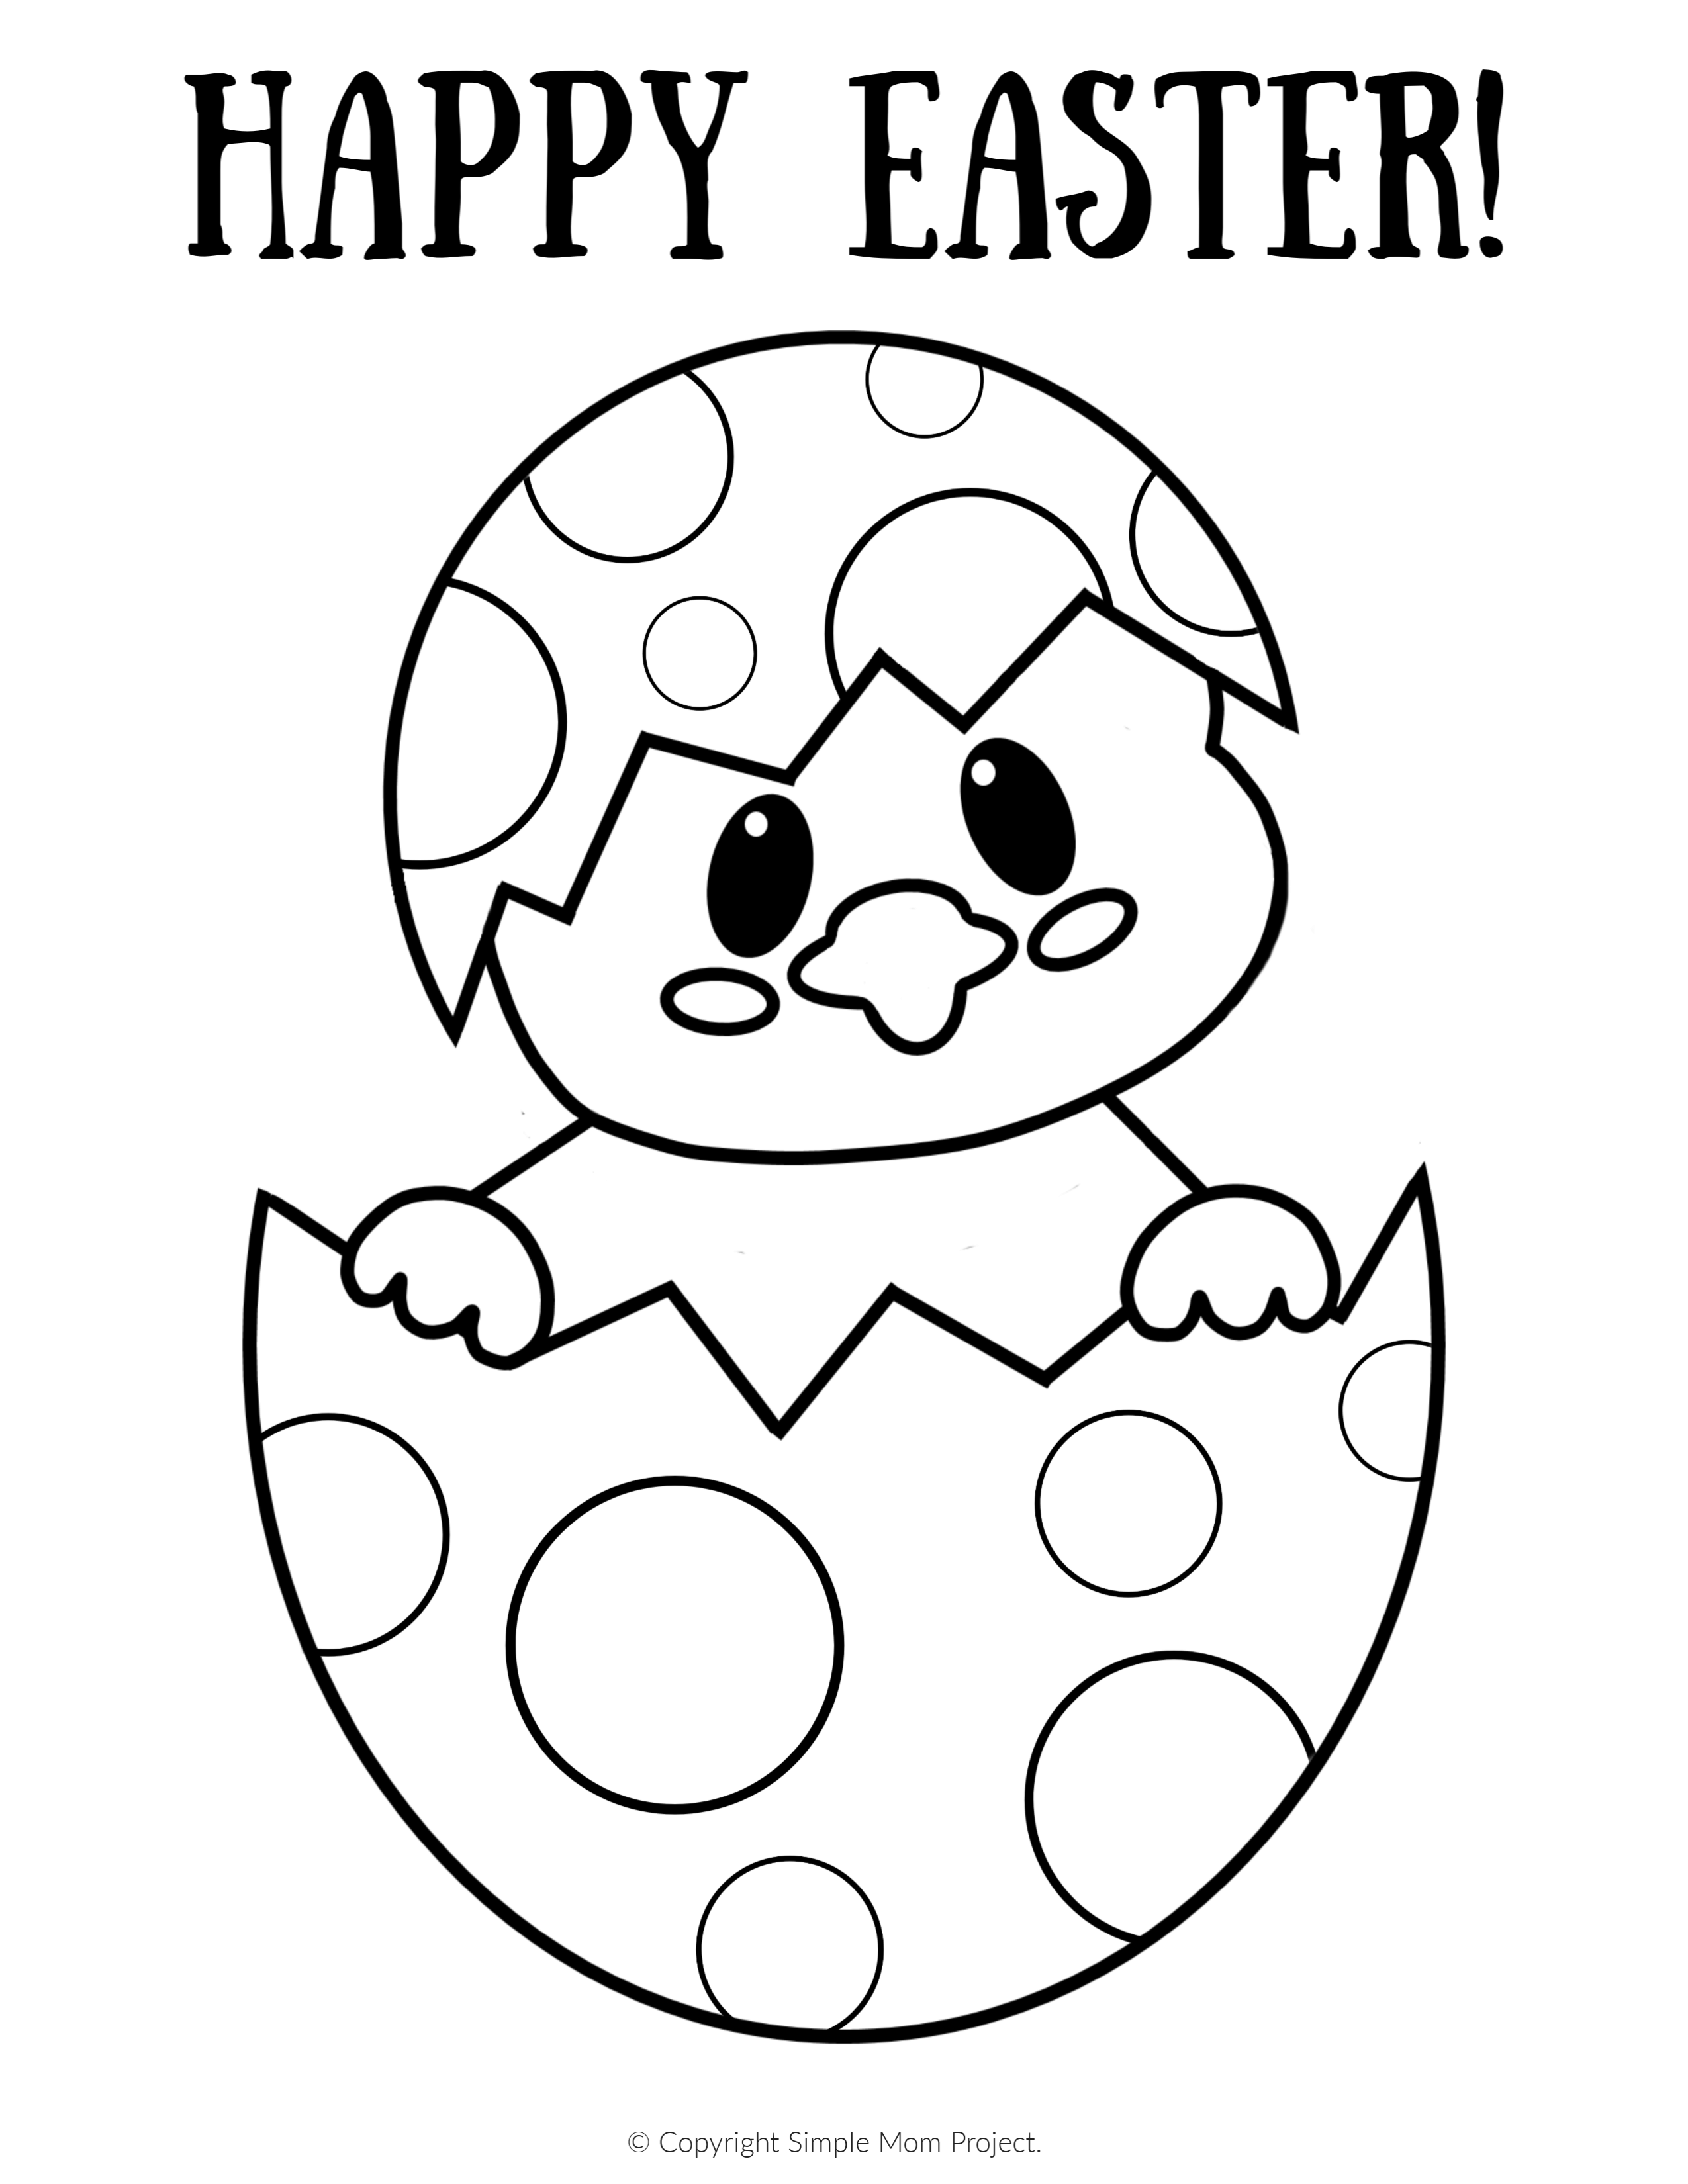 printable easter coloring pages for toddlers easy easter egg q tip painting free printable template printable easter coloring pages for toddlers